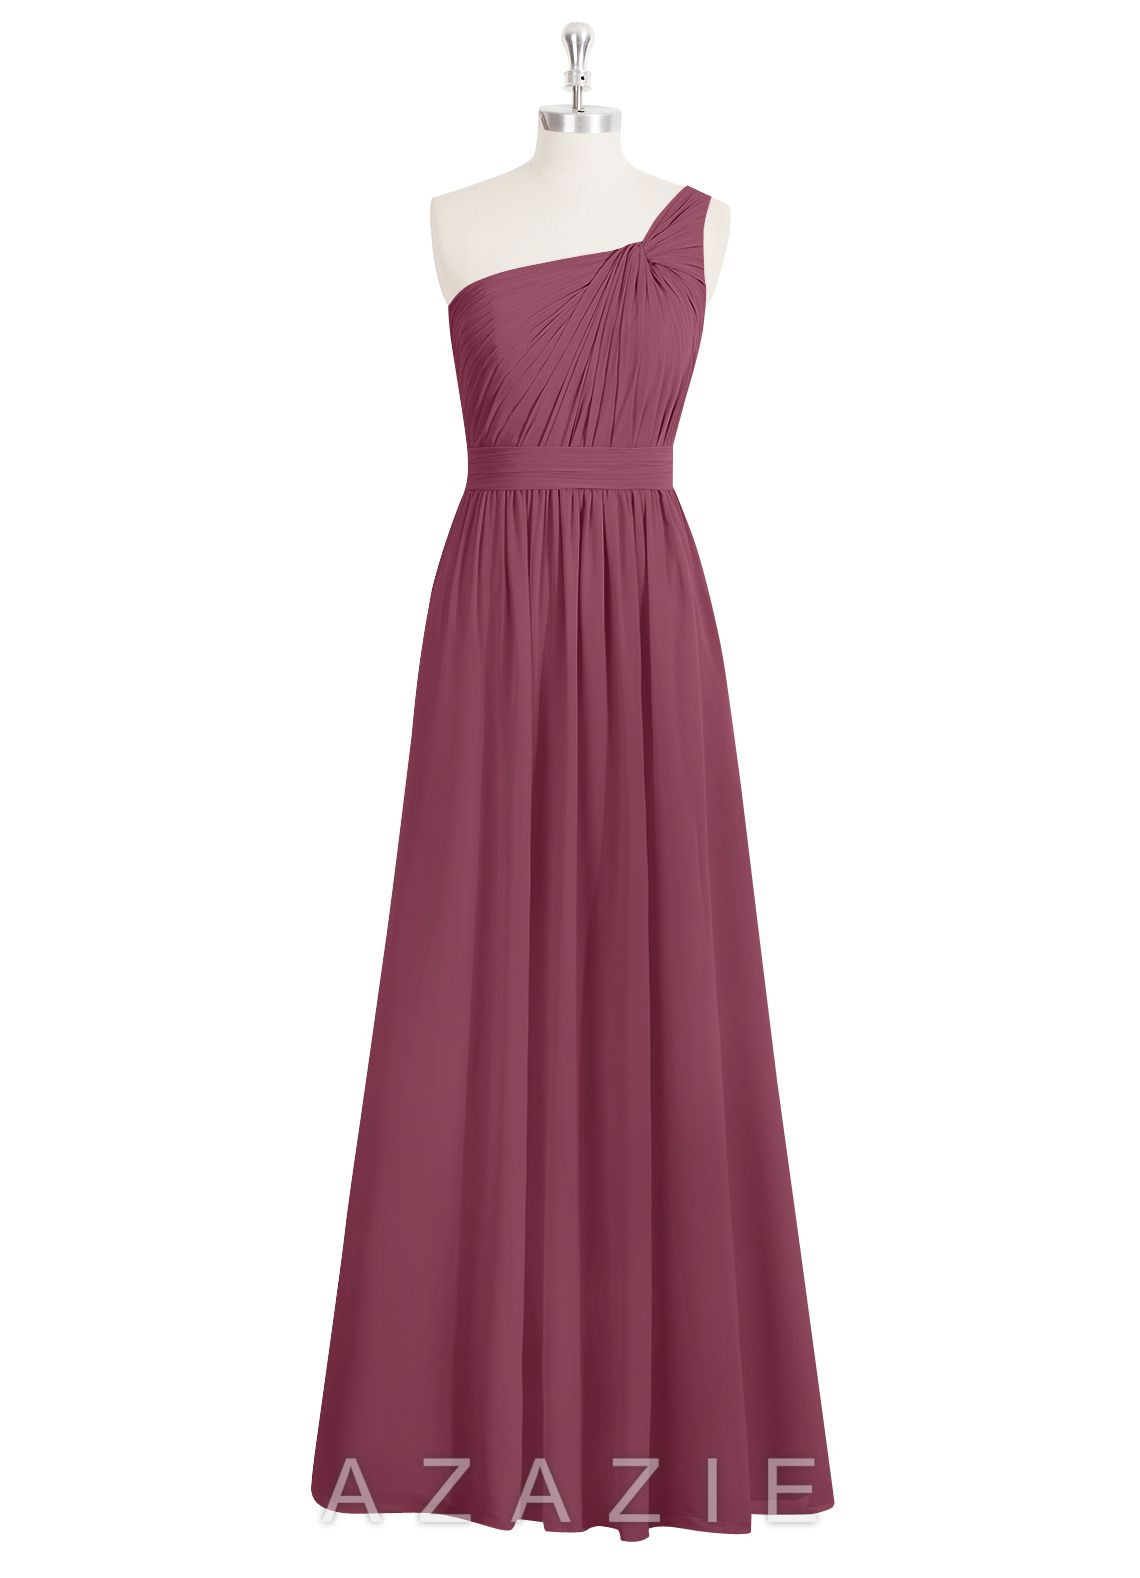 AZAZIE EVE. The fashionable floor-length bridesmaid dress by Azazie has an A-line/princess cut in a fabulous chiffon. #Mulberry #Bridesmaid #Wedding #CustomDresses #AZAZIE